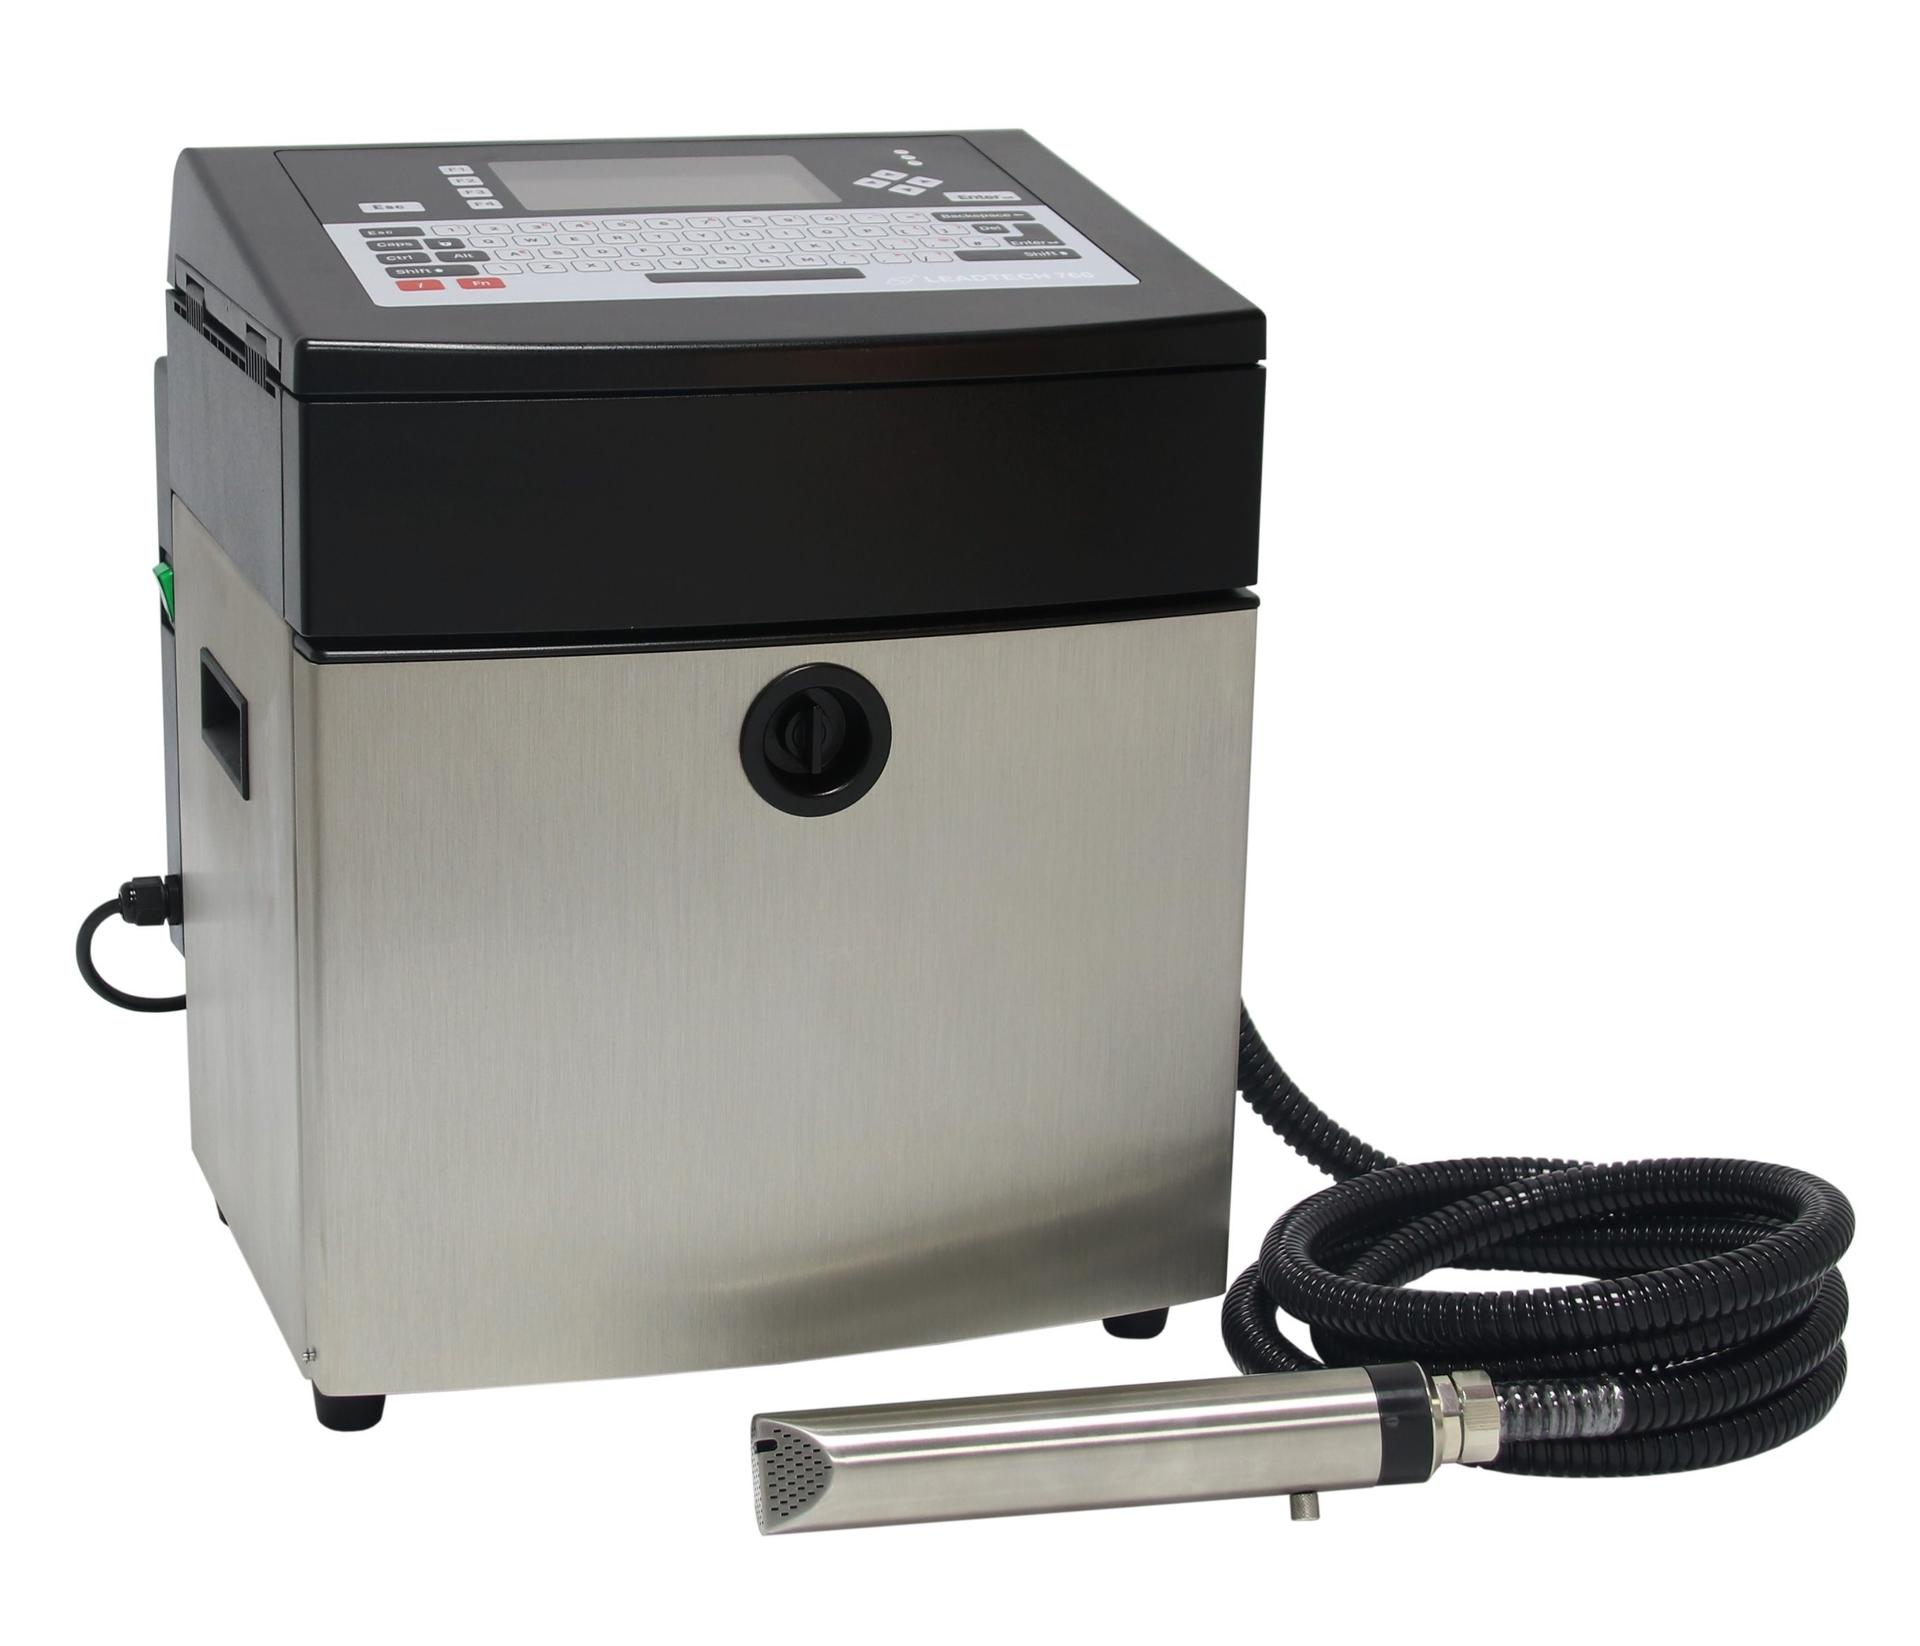 Lead Tech Cij Digital Printer for Cable Printing